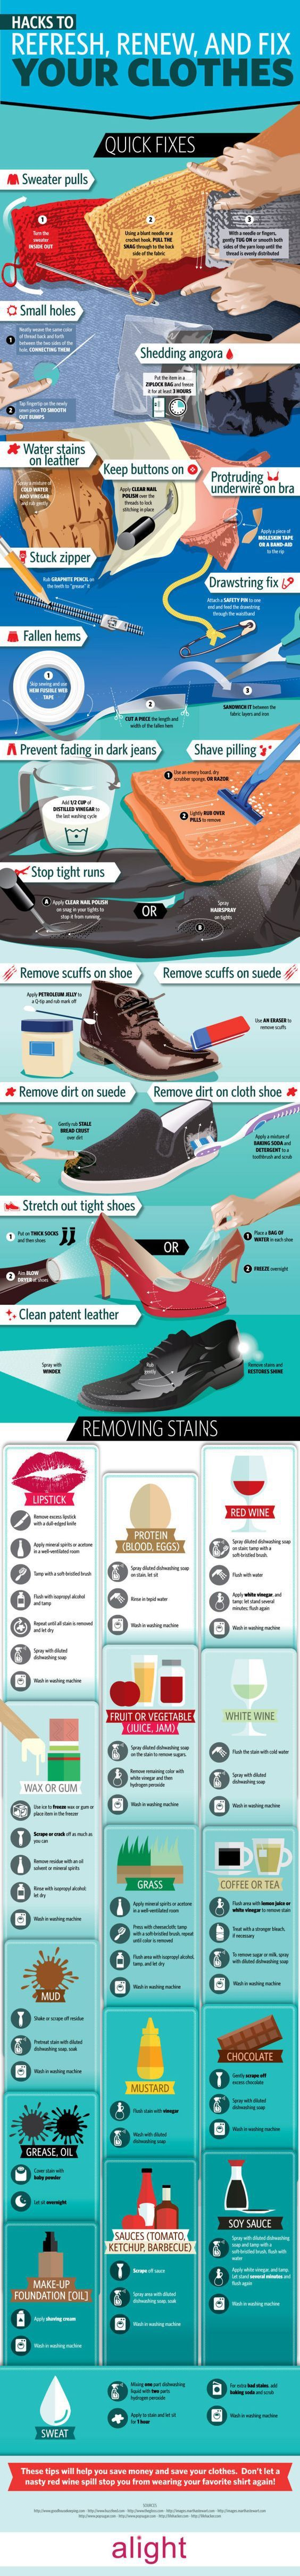 How to Repair Common Clothing Problems